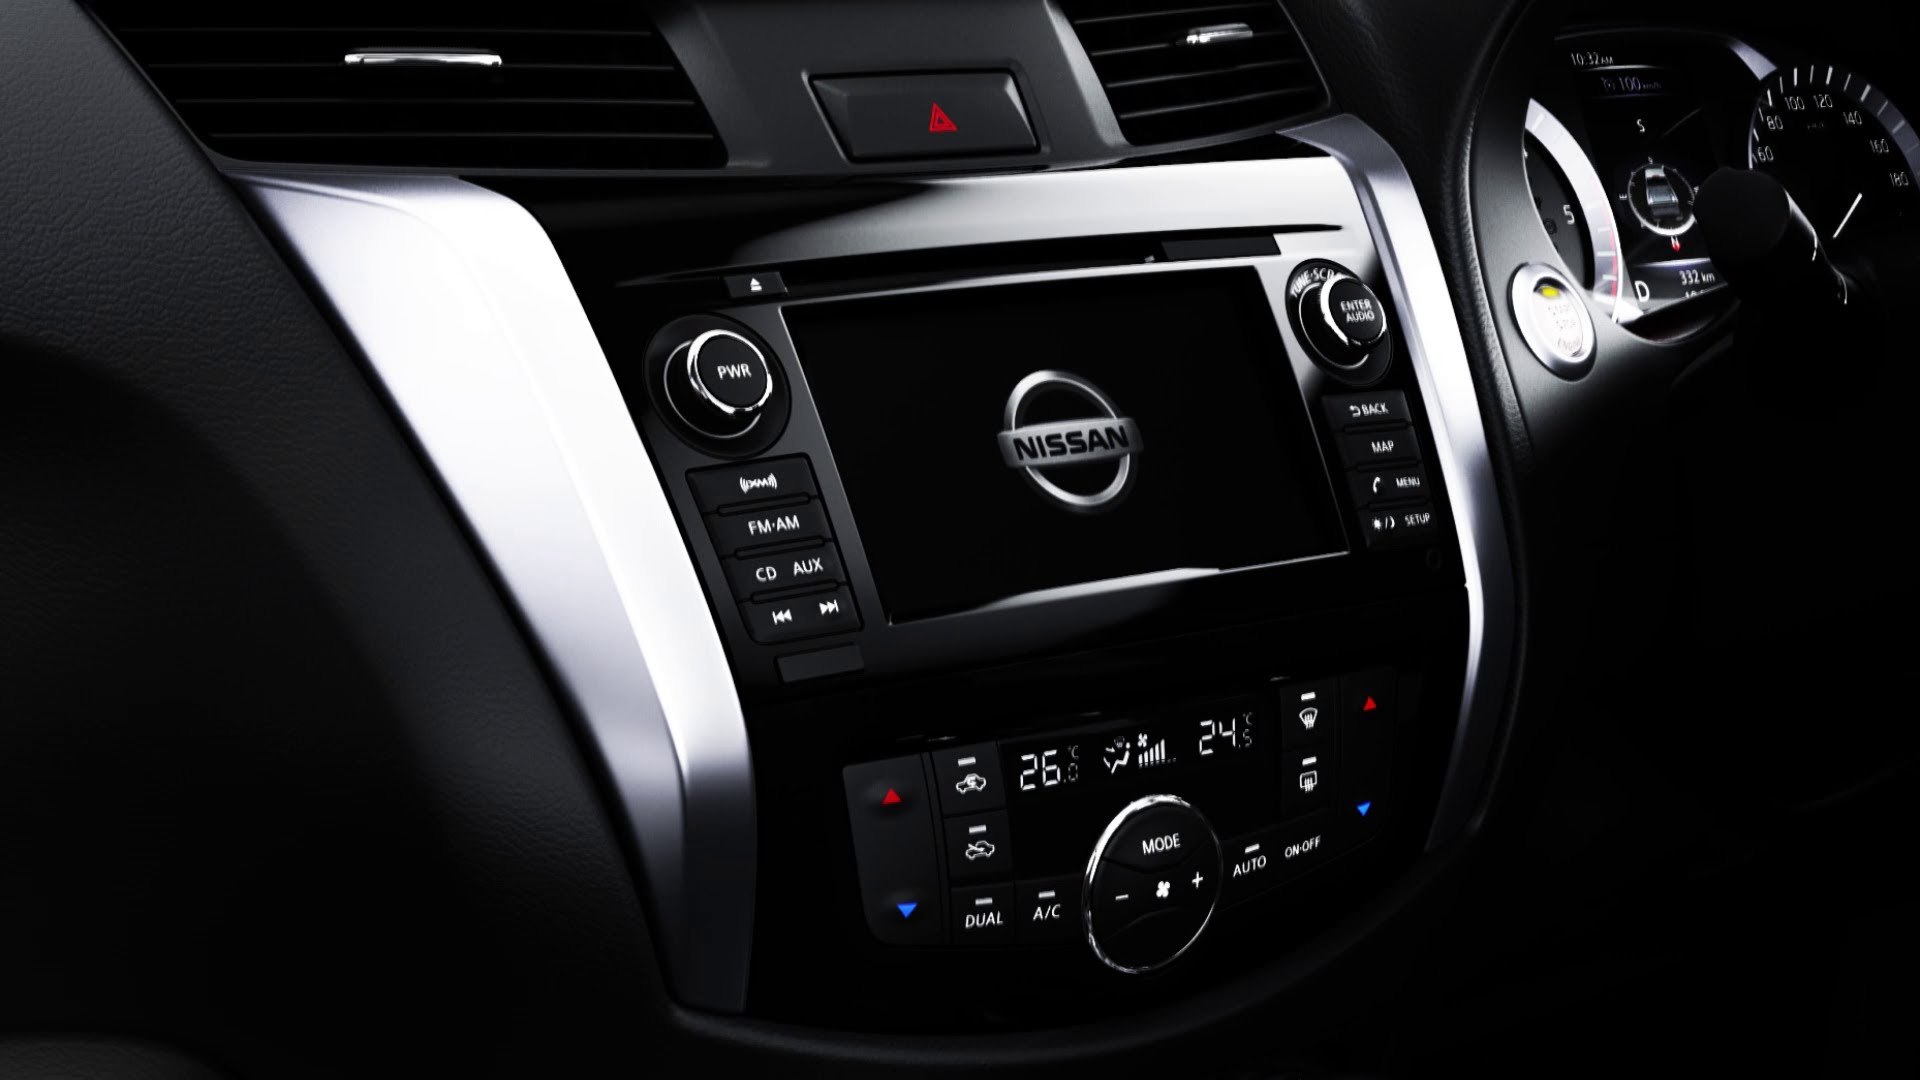 2015 Nissan Navara interior teaser CarPower360°